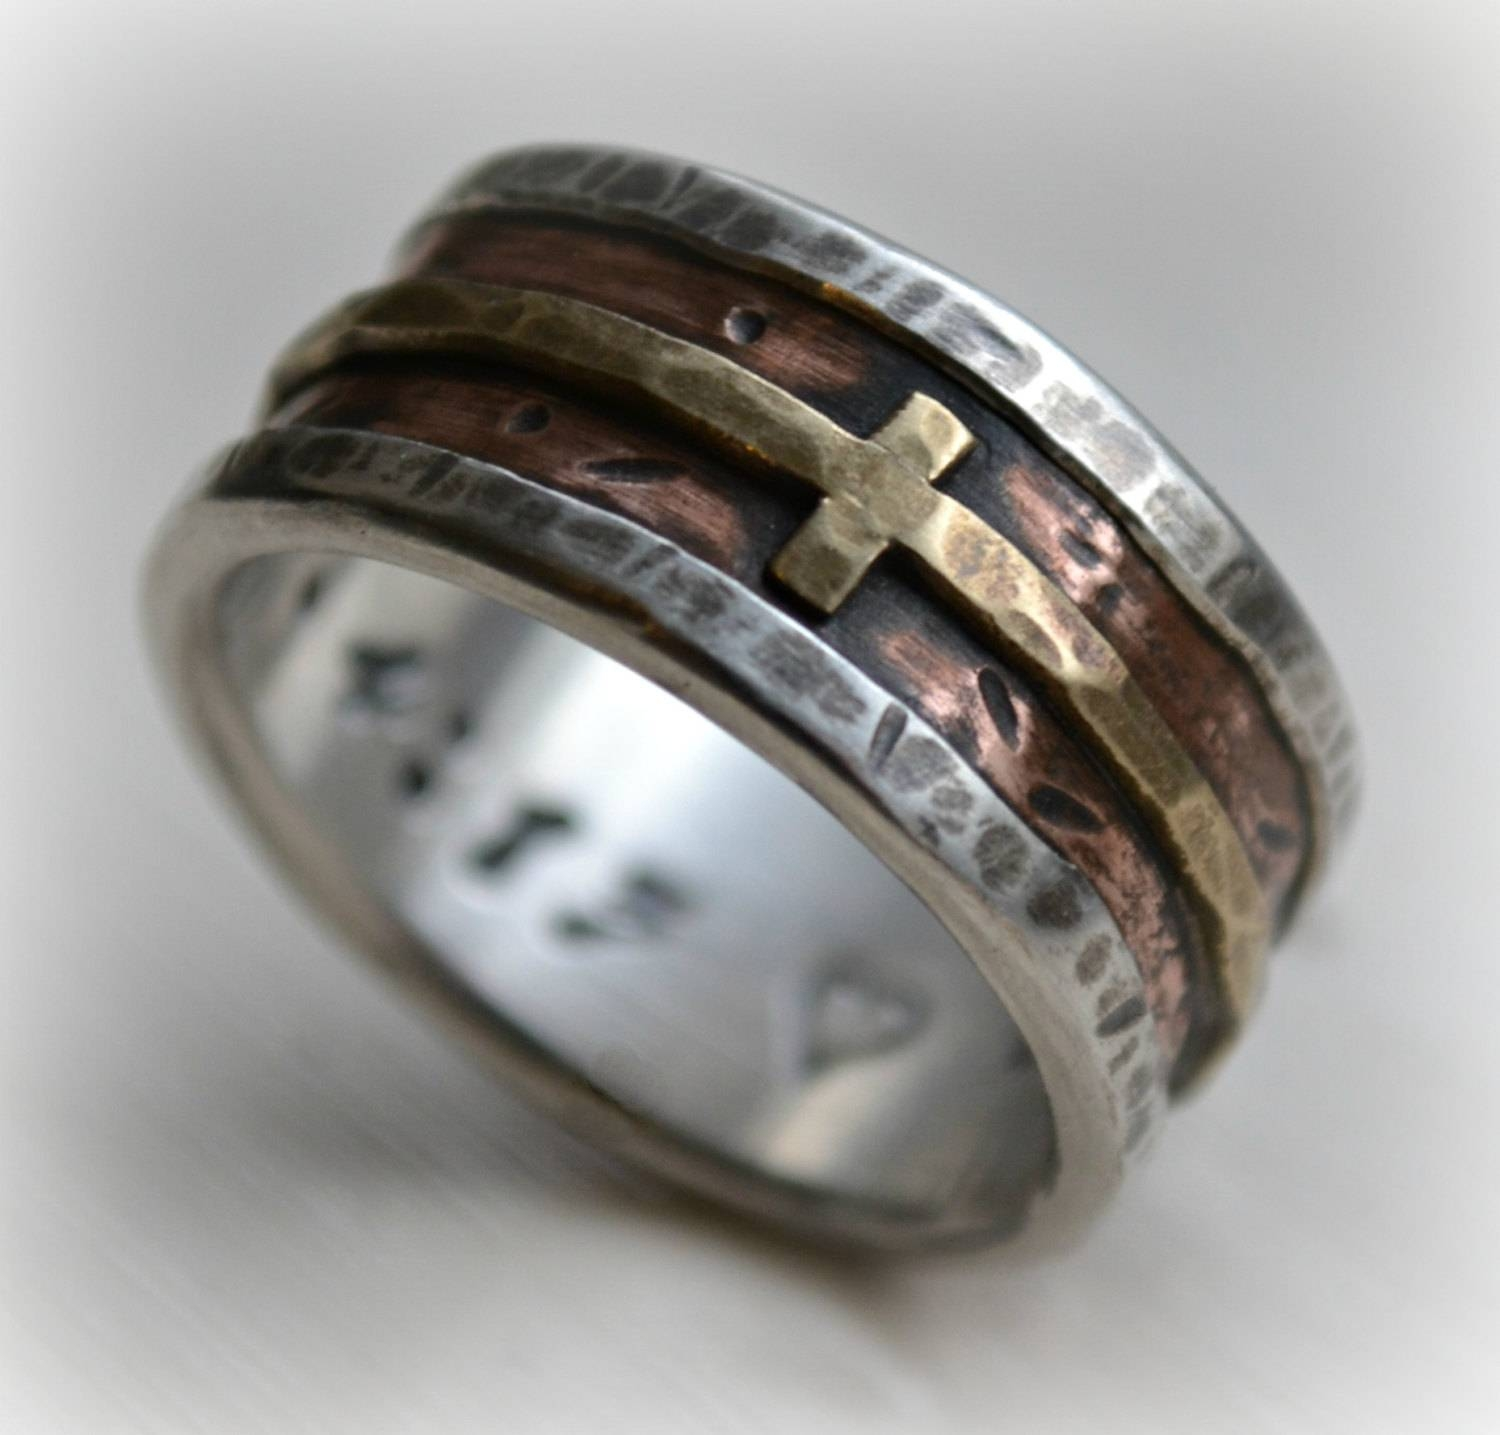 Mens Wedding Band Rustic Fine Silver Copper And Brass Cross Regarding Men's Wedding Bands With Cross (View 10 of 15)